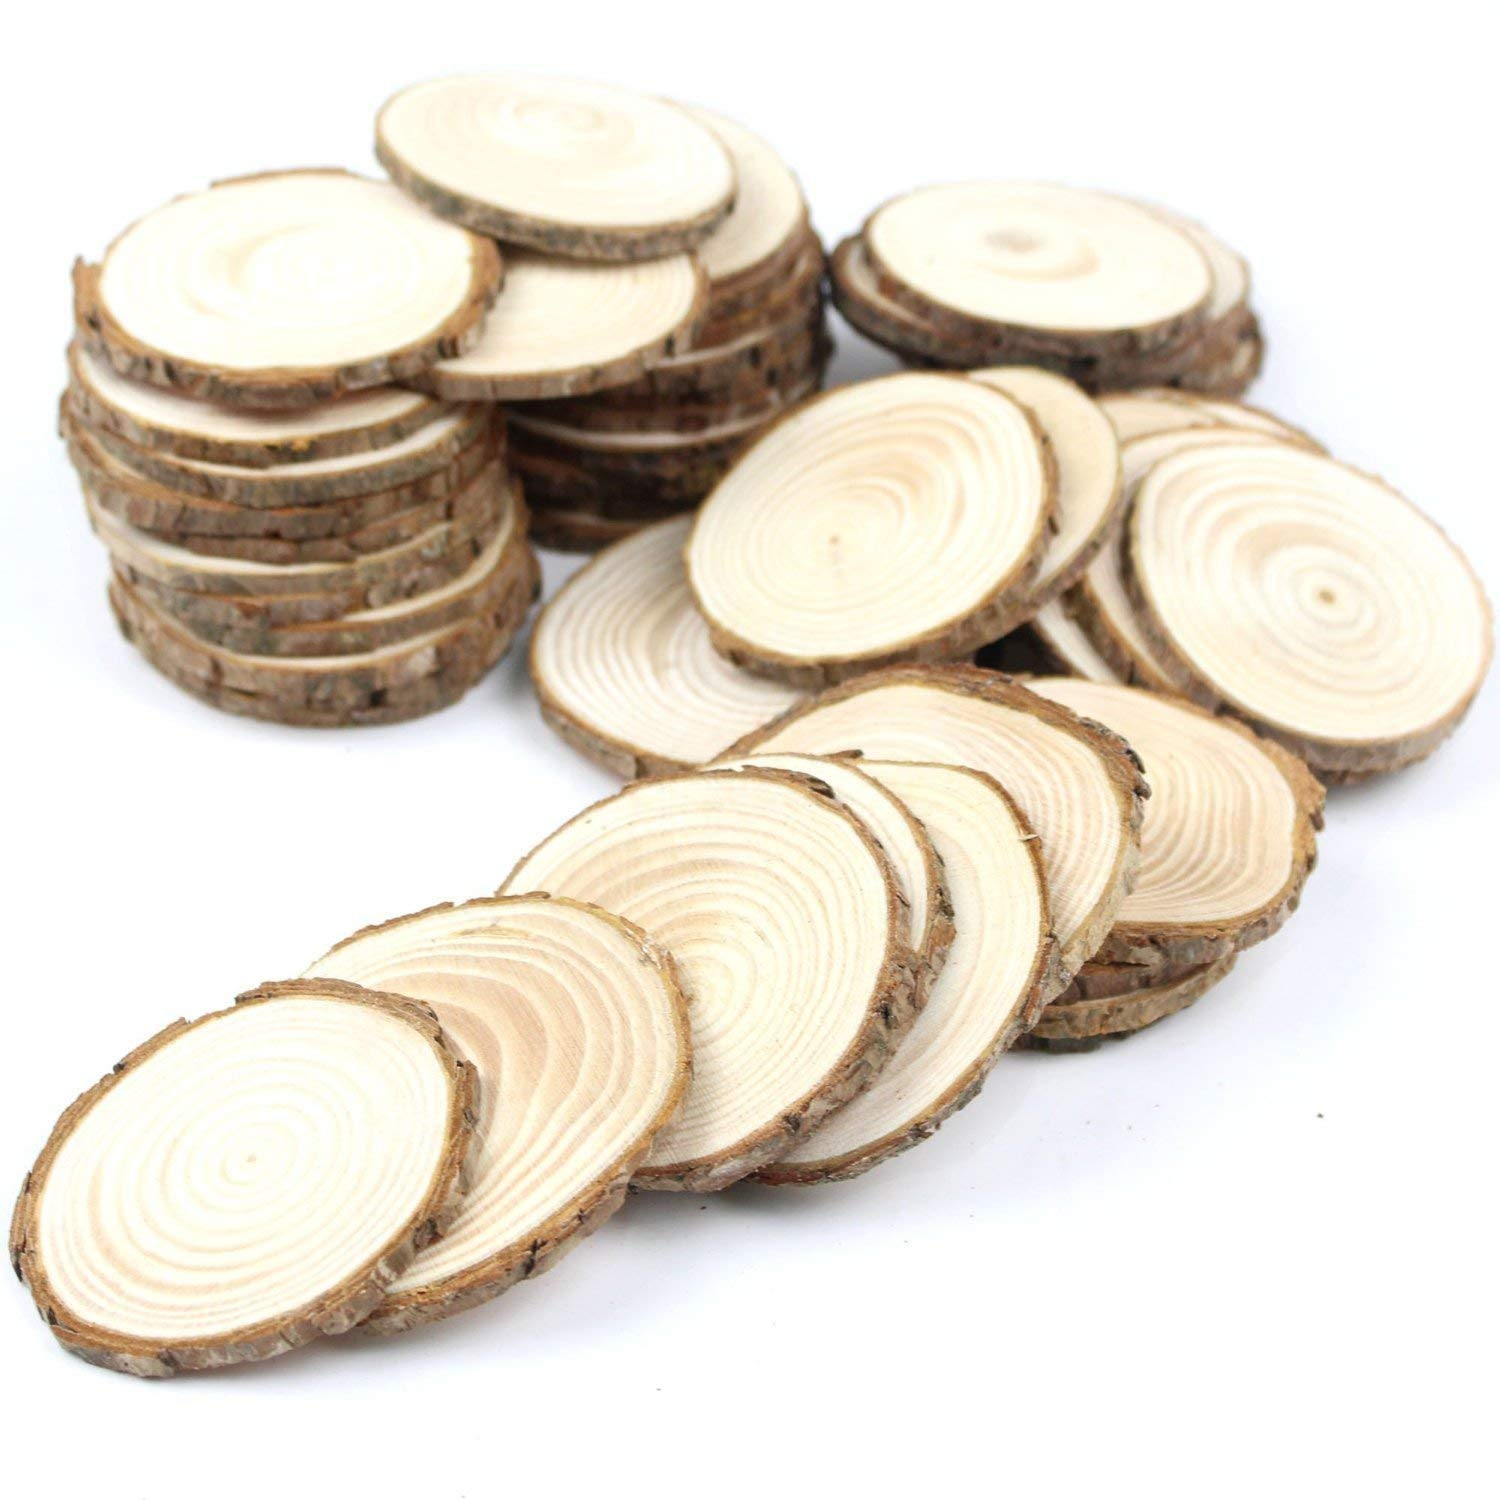 """40pcs 2""""-2.4"""" Unfinished Natural Blank Wood Slices Circles with Tree Bark Log Discs for DIY Craft Woodburning Christmas Rustic Wedding Ornaments 5.0 Out of 5 Stars 1 Customer Review"""